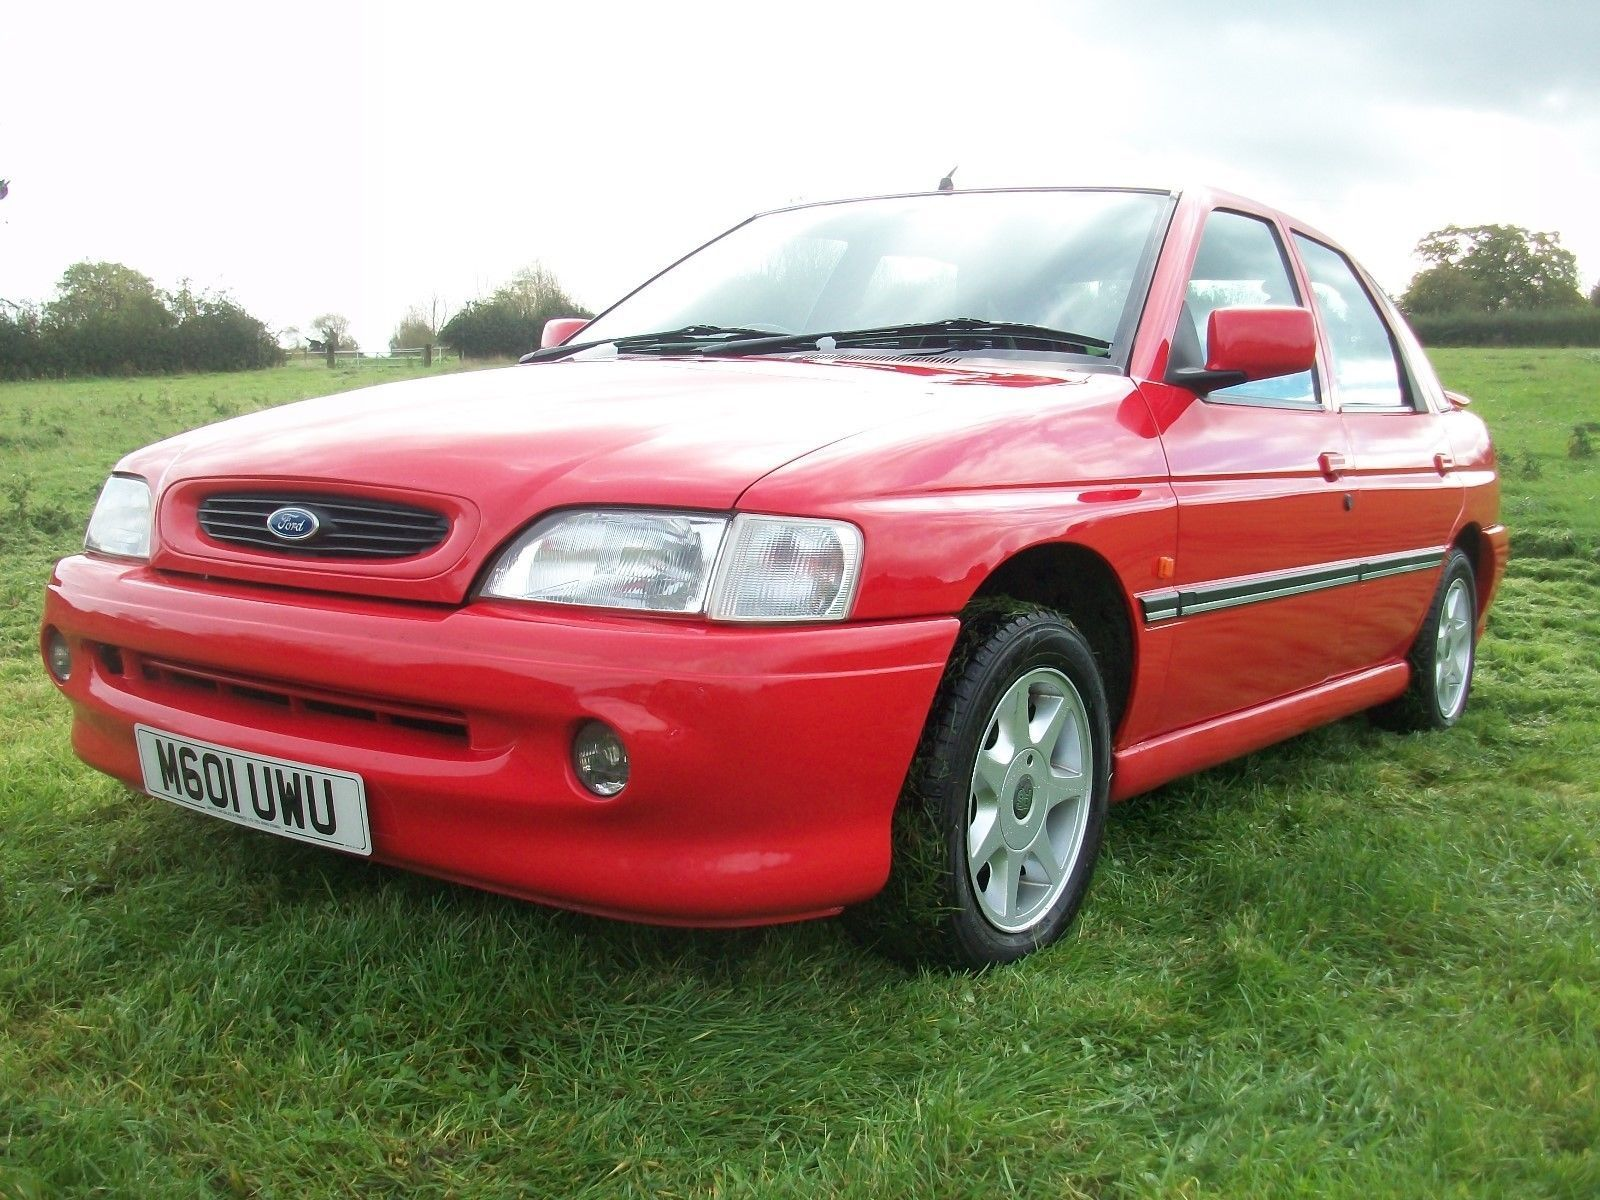 ford escort lx d turbo last owner from 1995 m.o.t october future classic retro